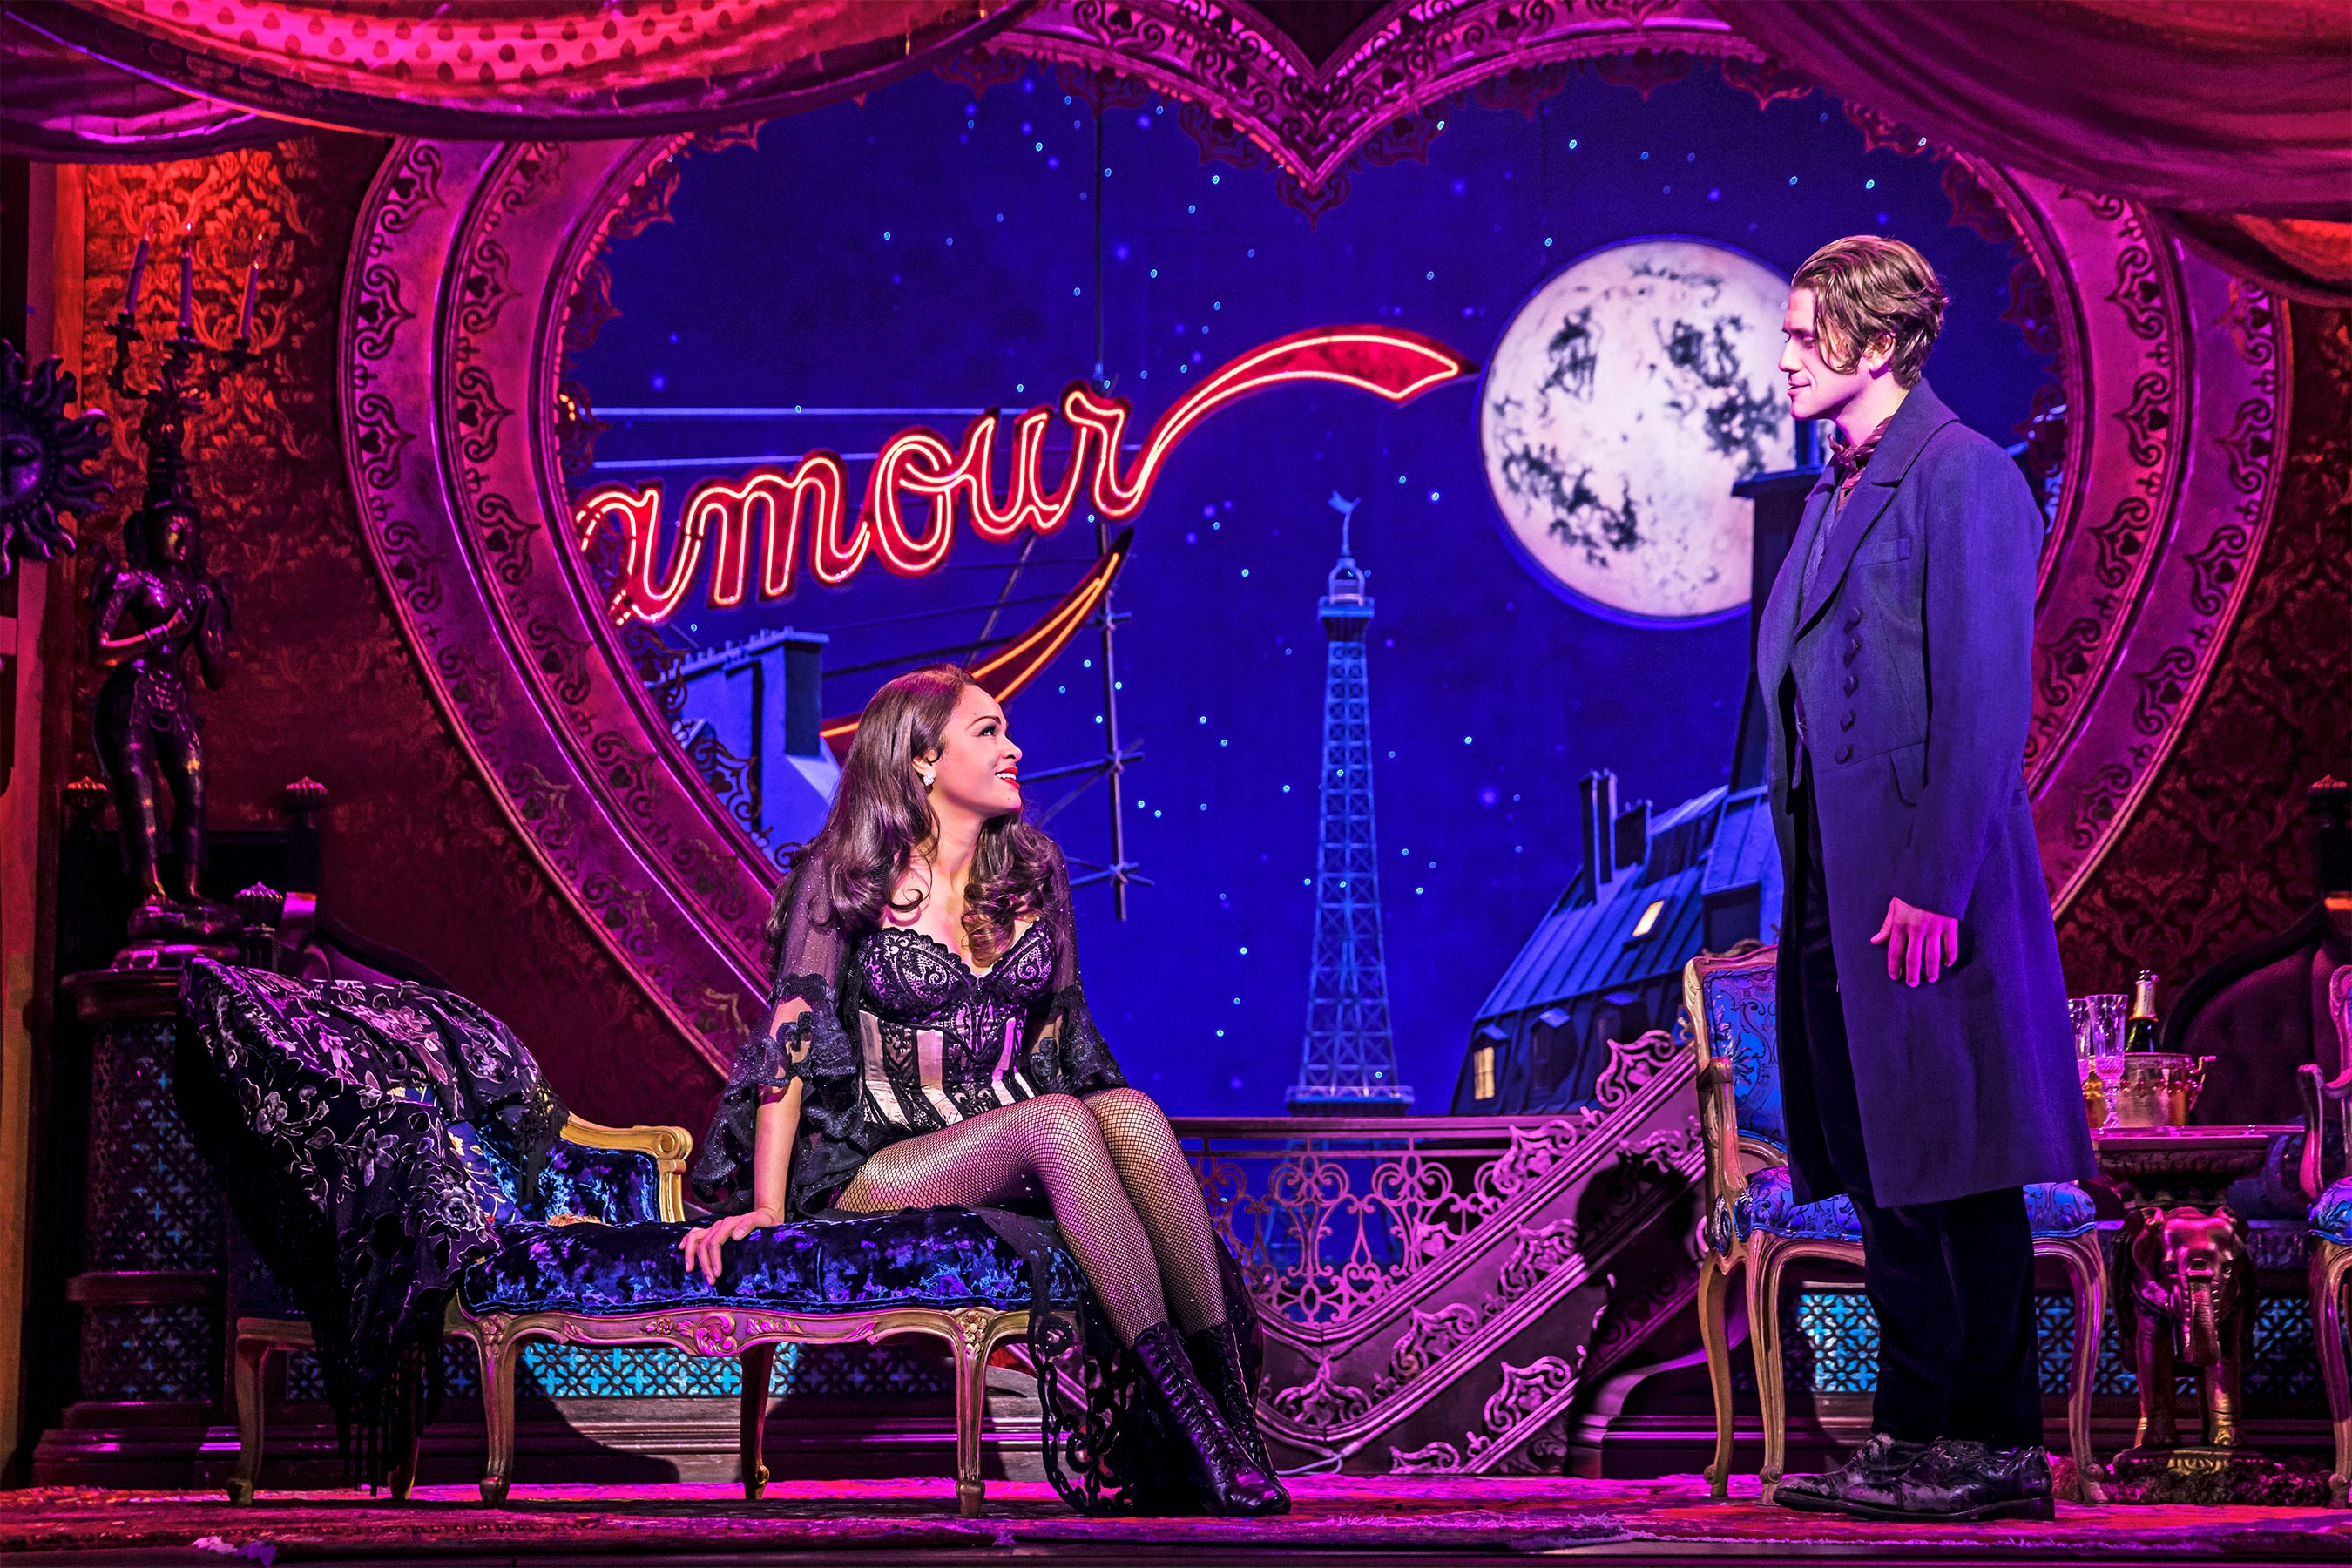 Review: Moulin Rouge! Is a Great American Musical for the